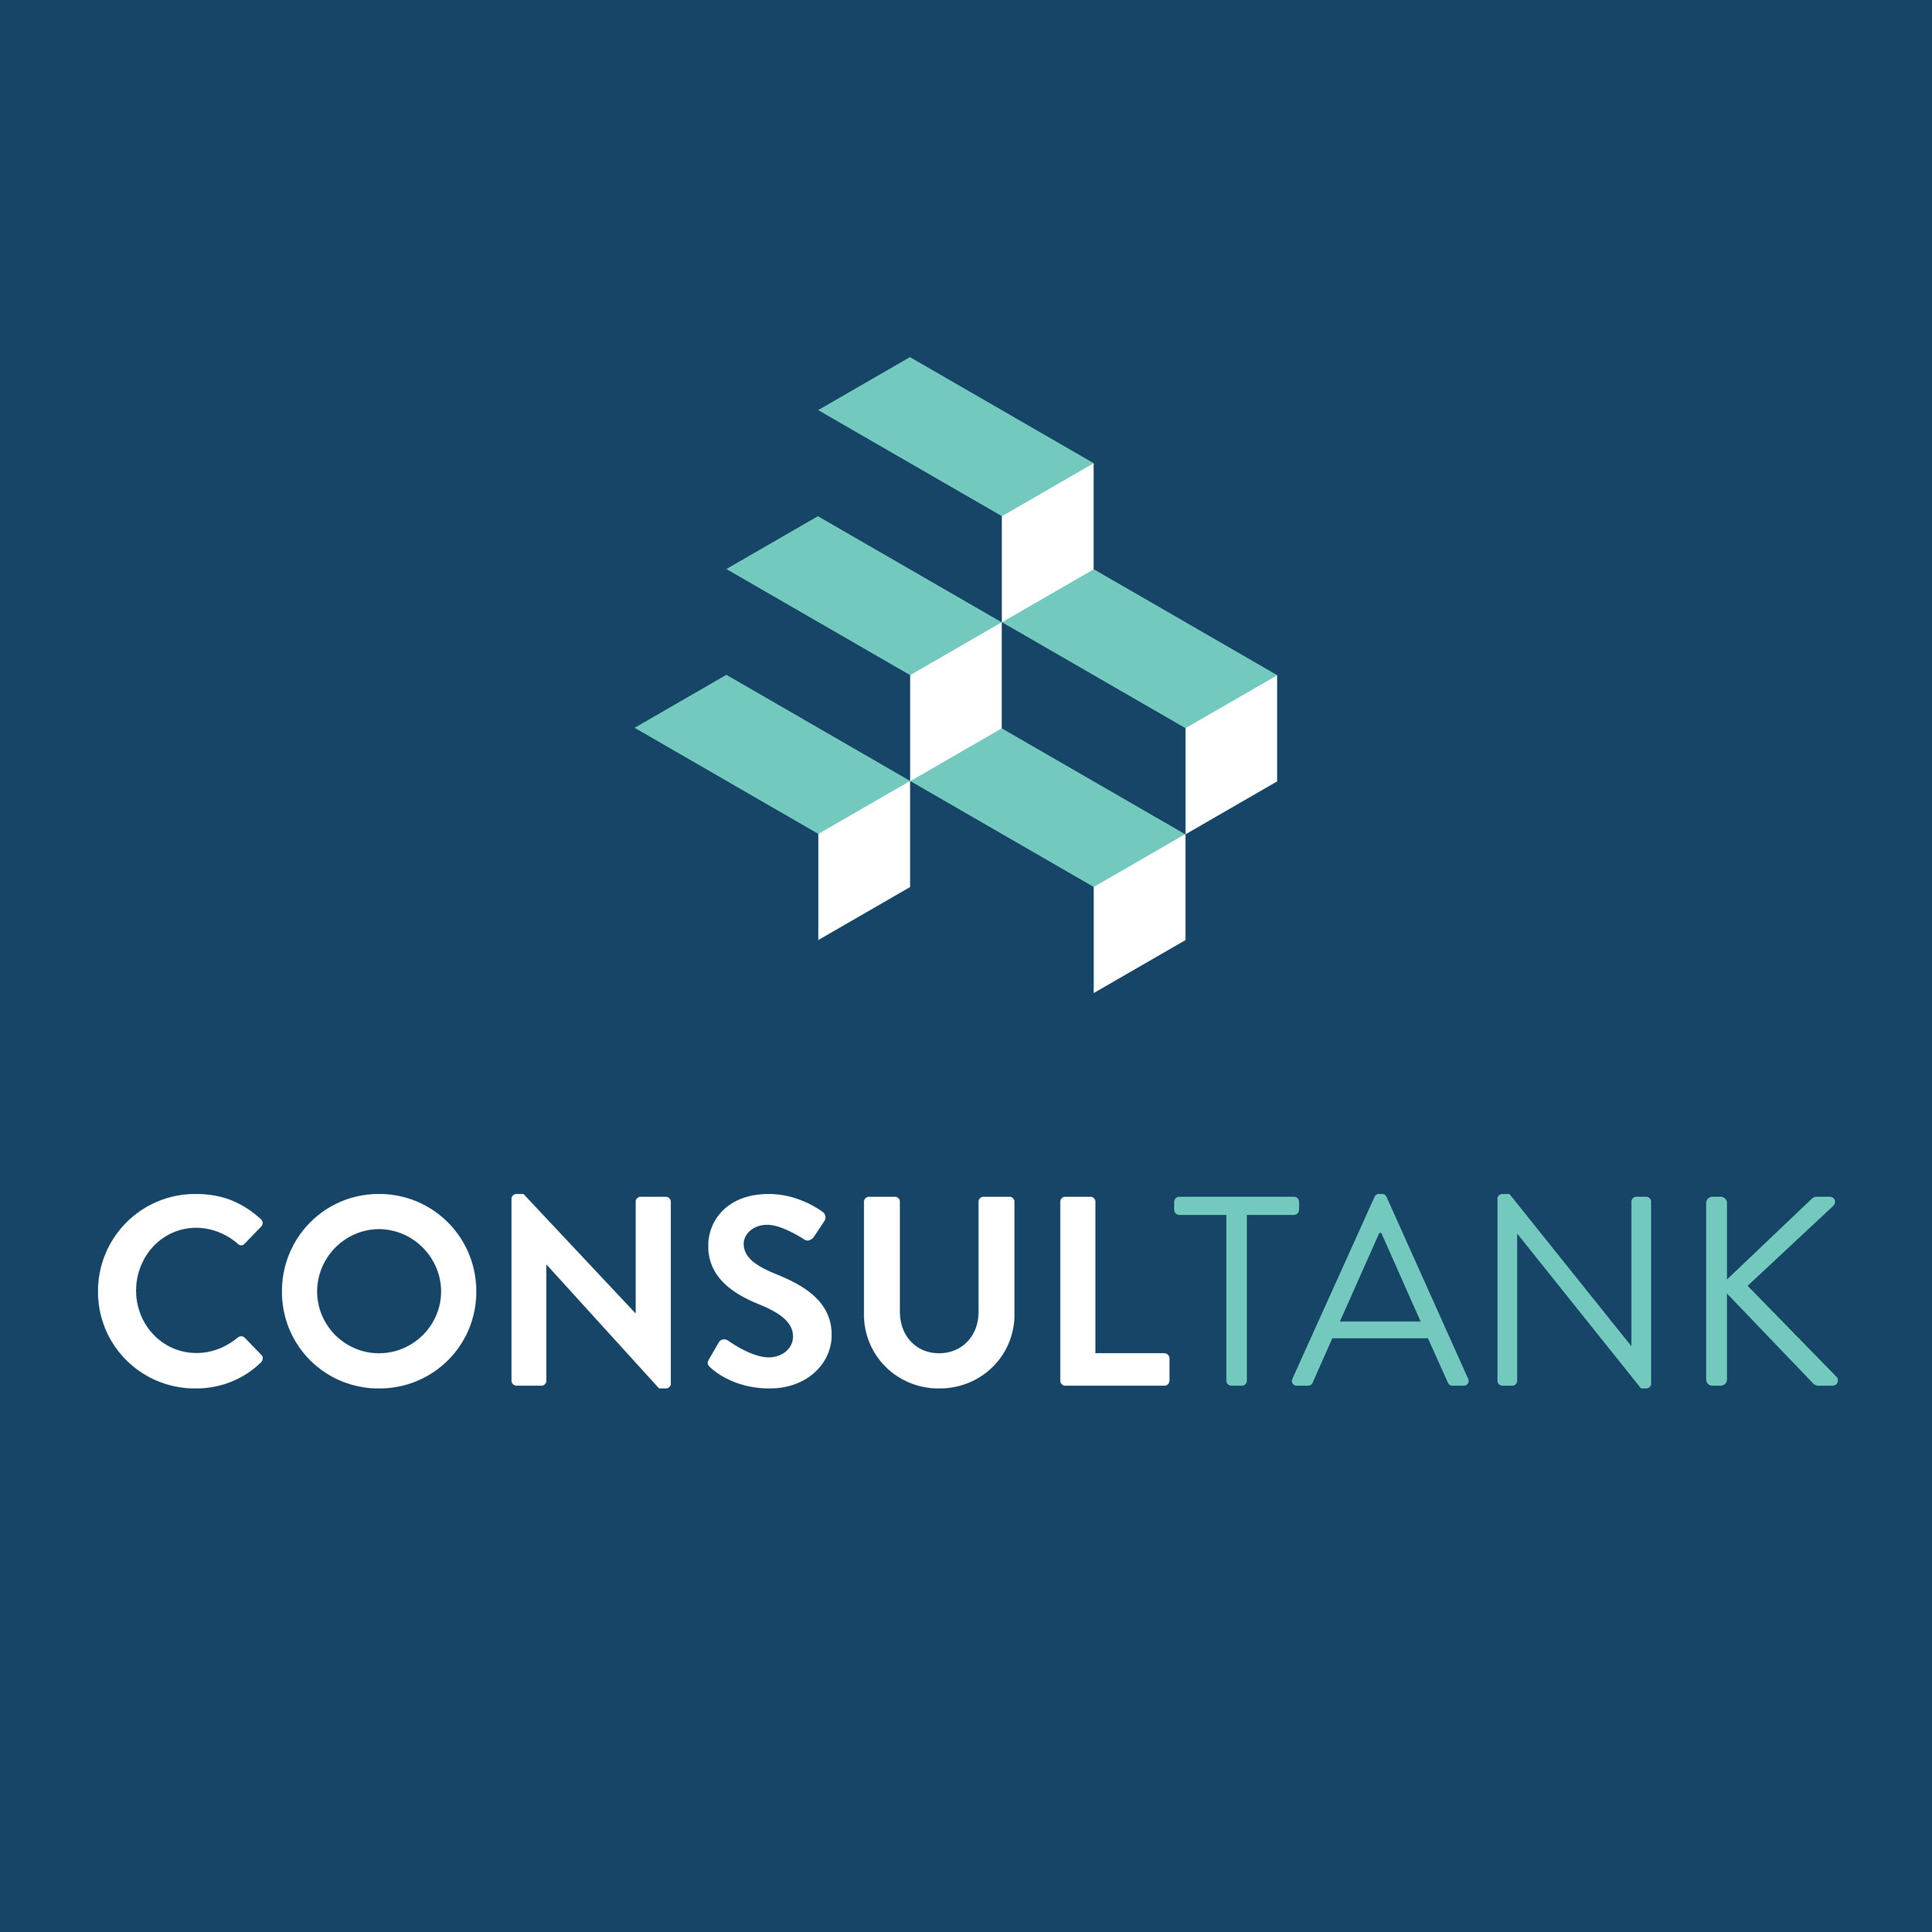 Consultank - Branding IdentityDigital DesignStrategyMarketing